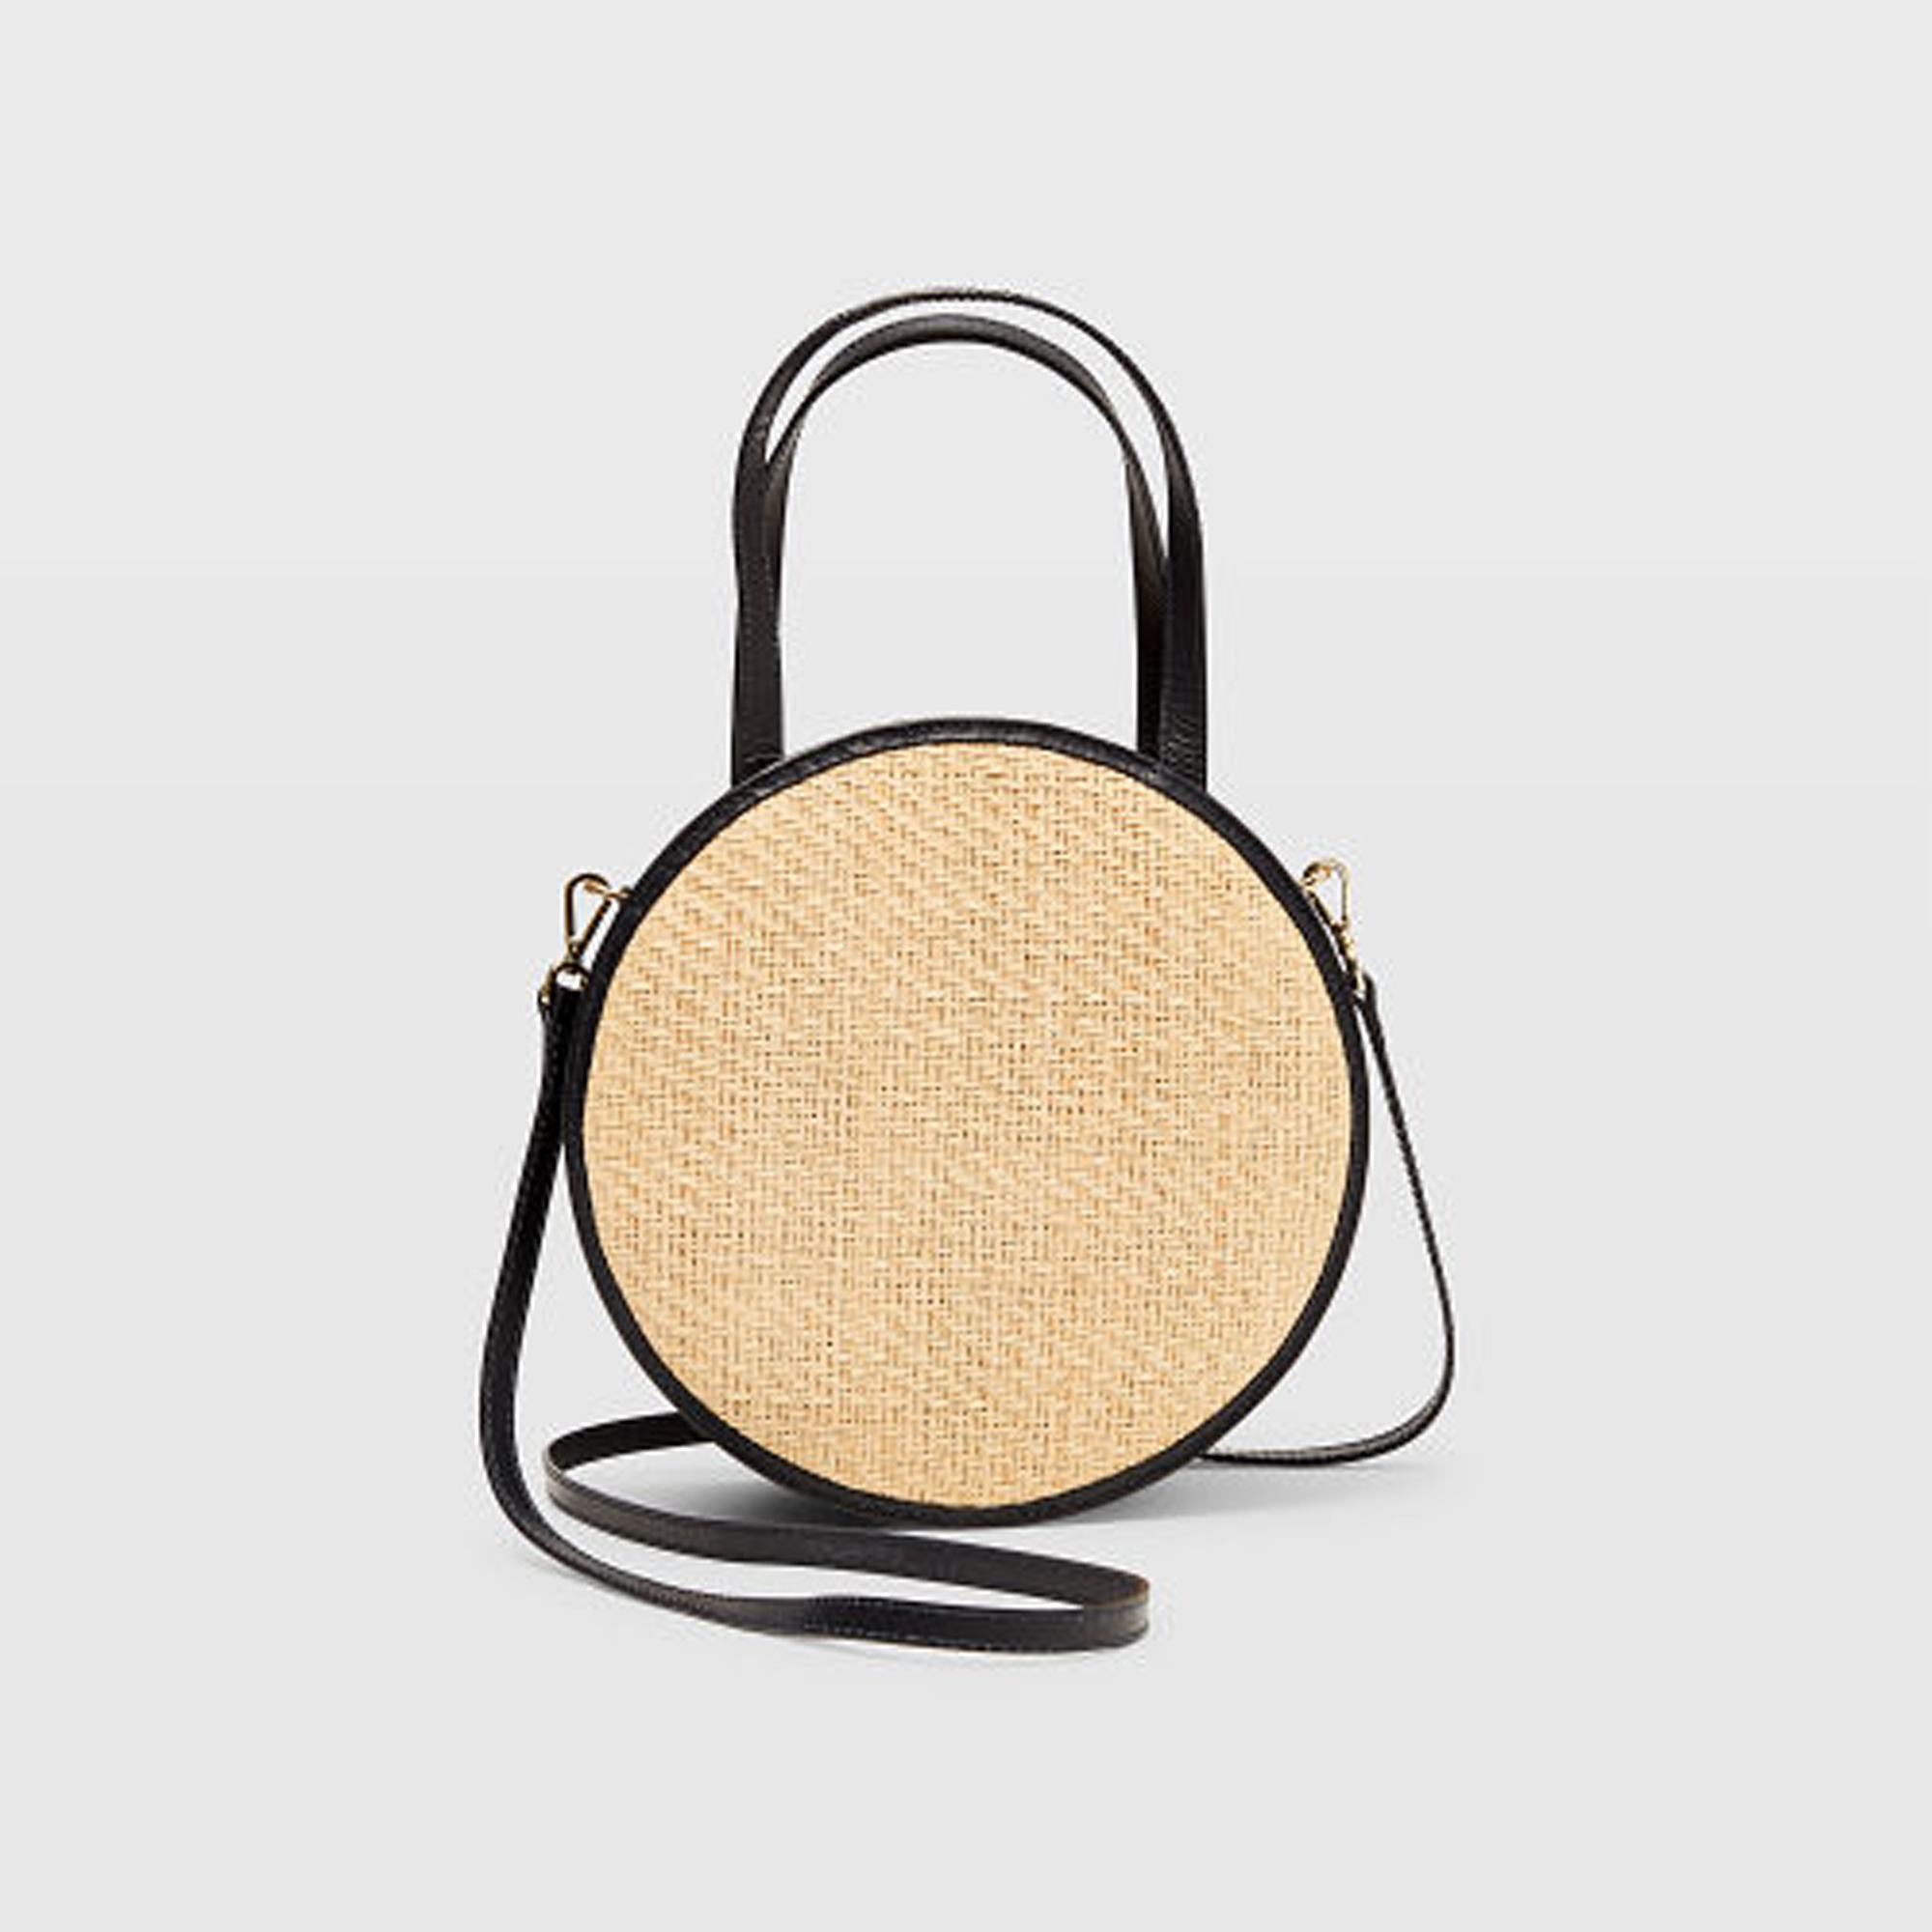 Kayu Carrie Bag   HK$2,690